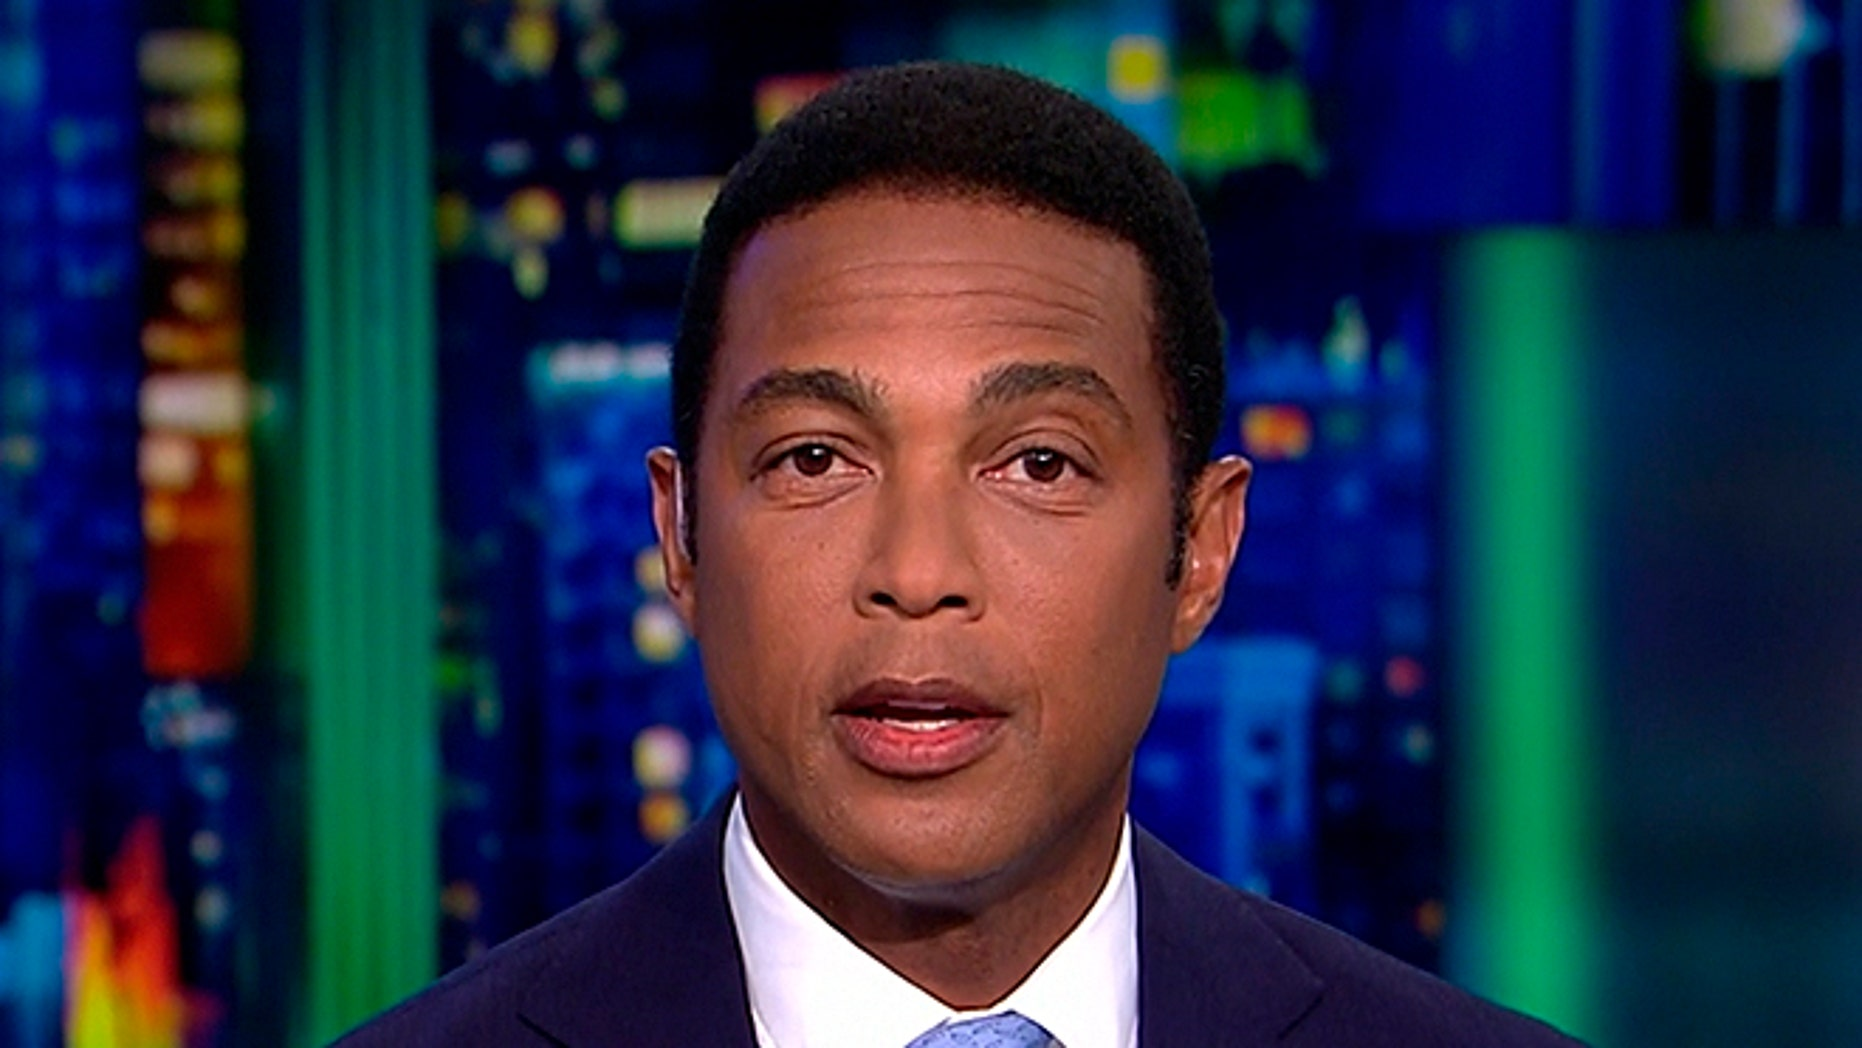 Don Lemon echoed recent rhetoric floated by the CNN's media reporter that President Trump should be put on delay.